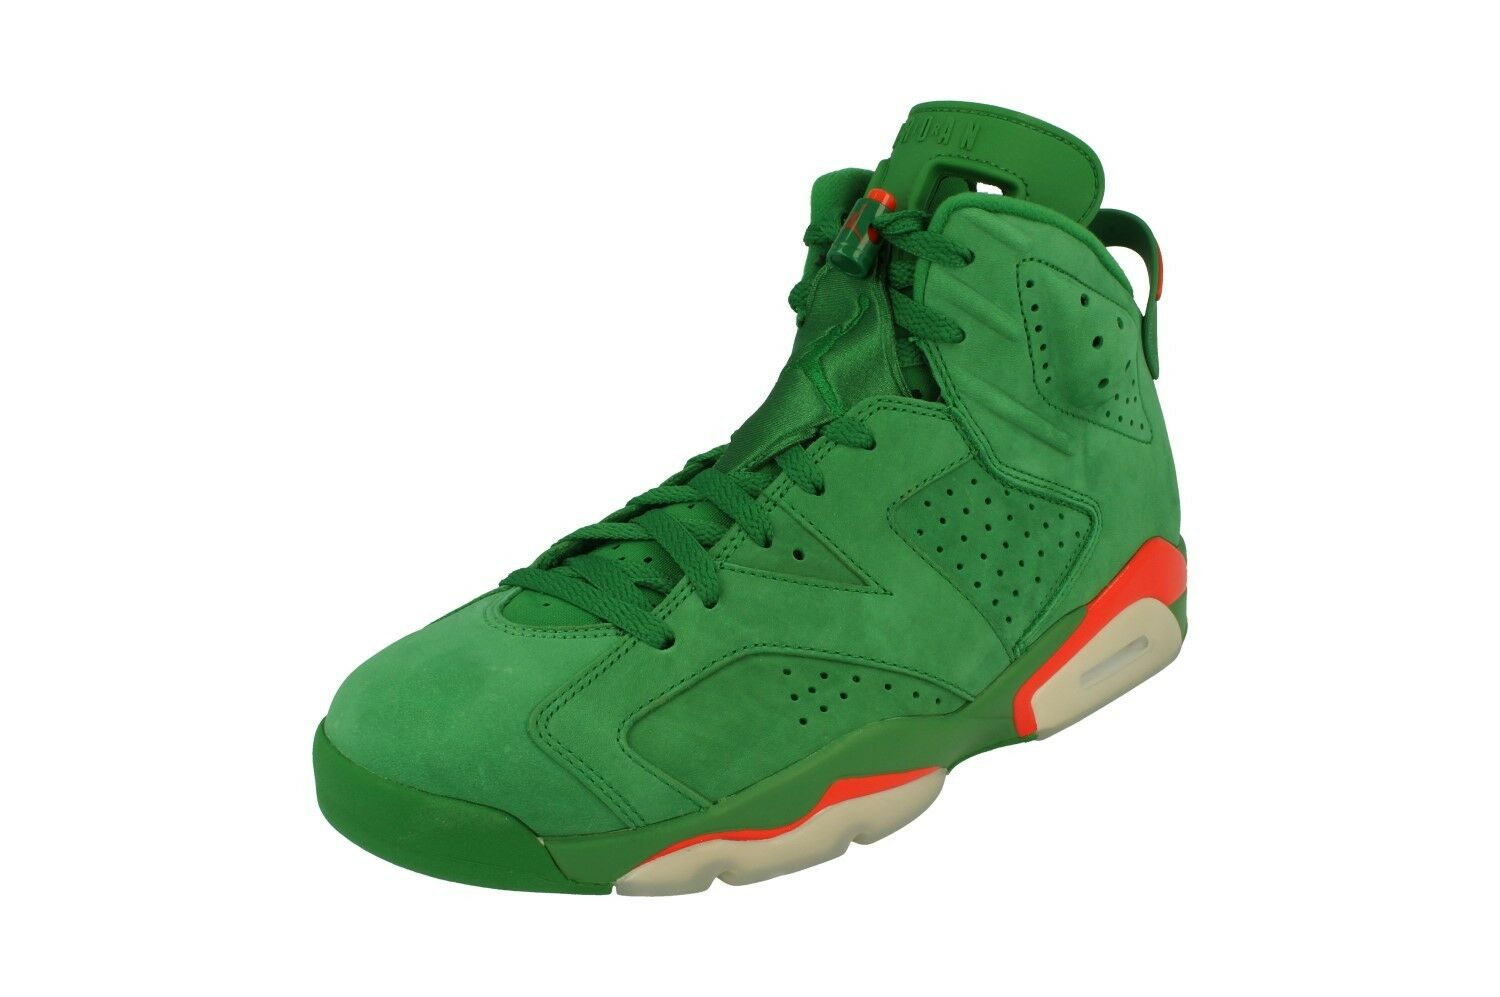 Nike Air Jordan 6 Retro Nrg G8Rd Mens Hi Top Basketball Trainers Aj5986 335